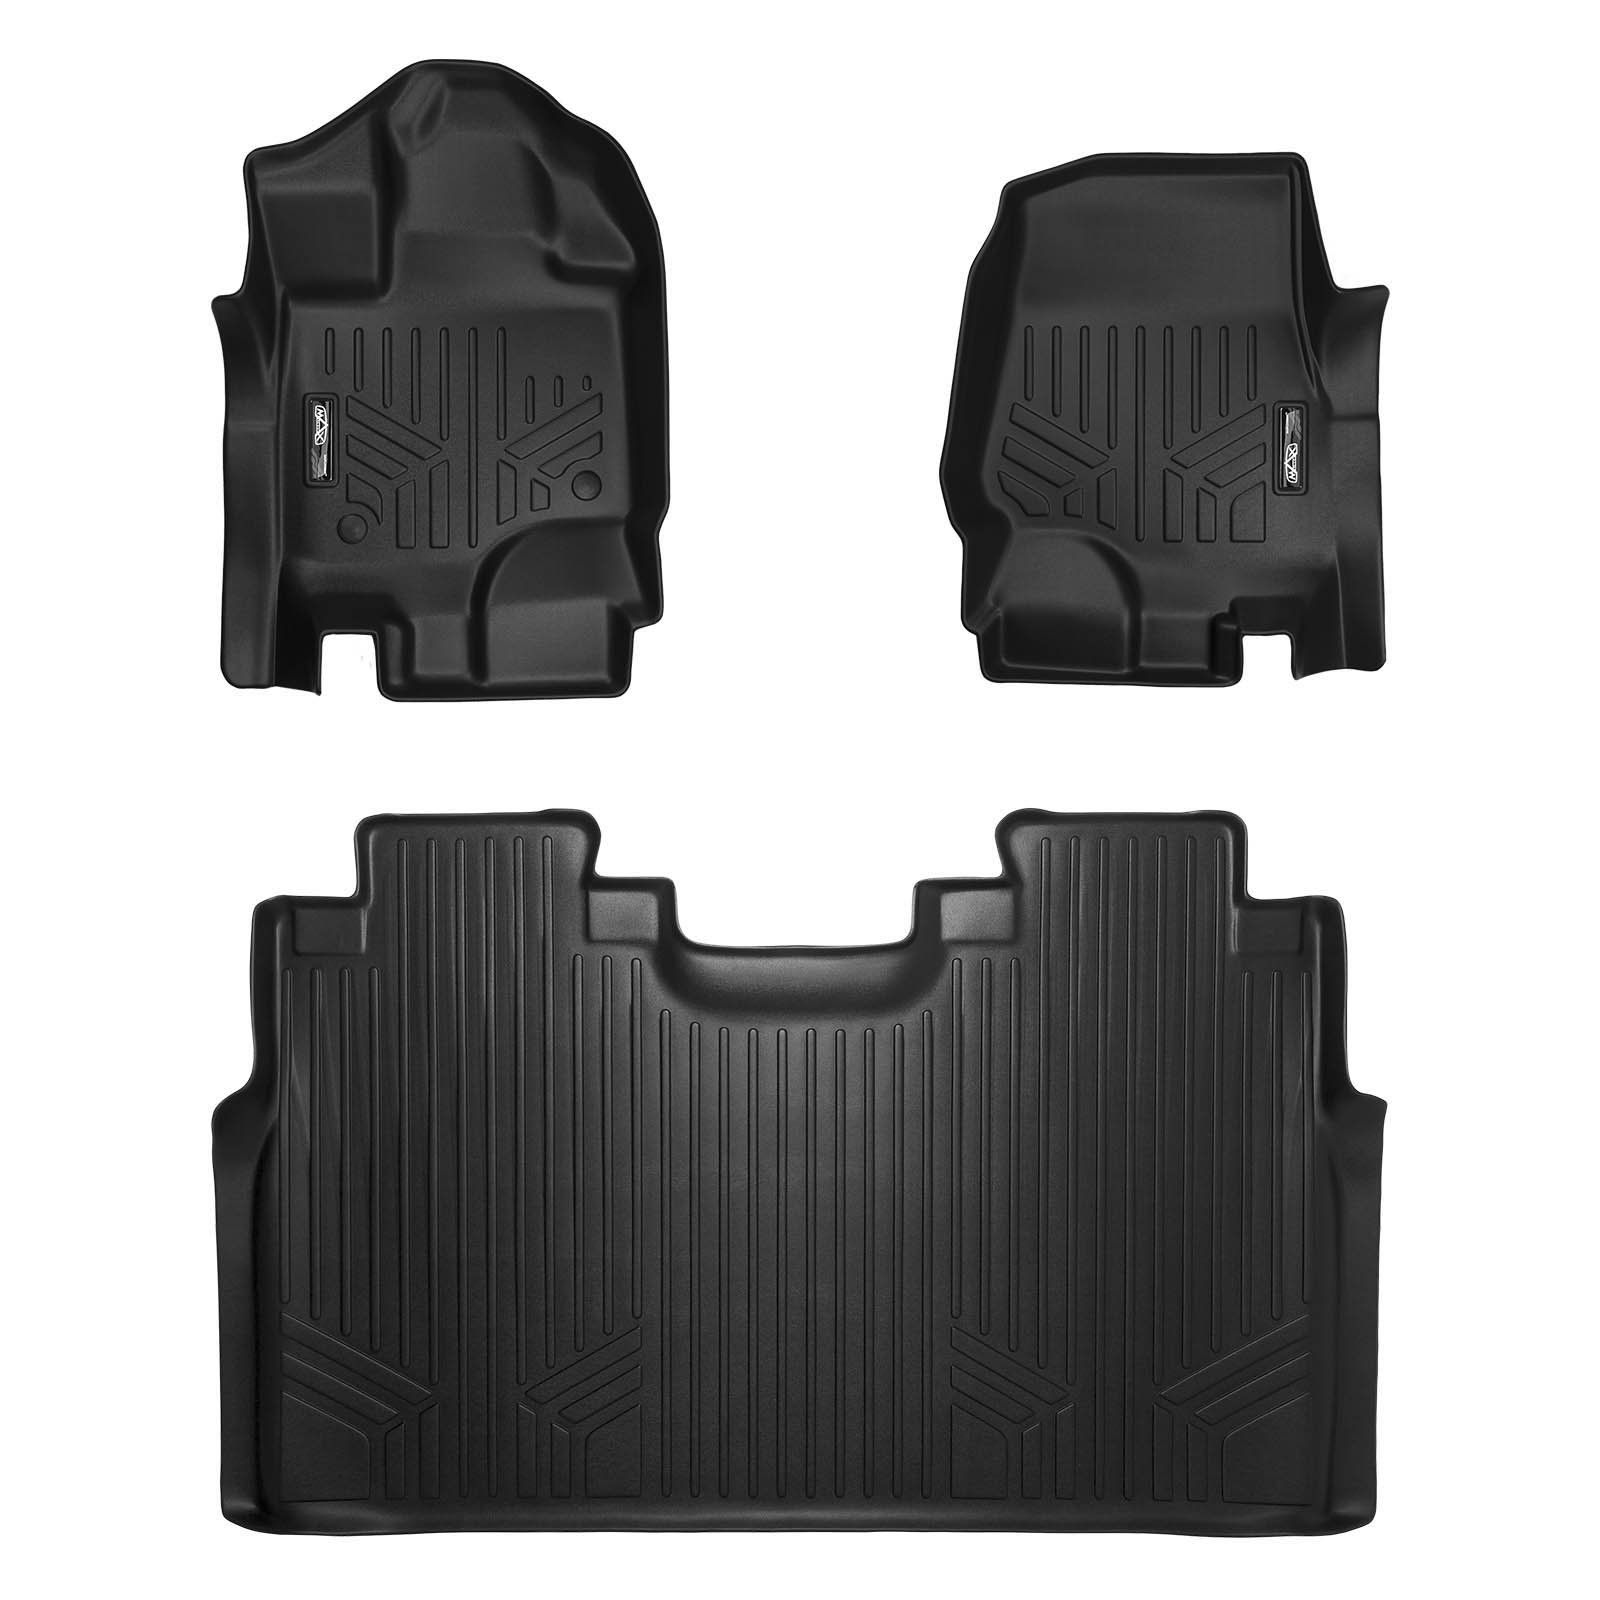 SMARTLINER Floor Mats 1st Row Liner Set Black for 2018 Toyota Camry Standard or Hybrid Models